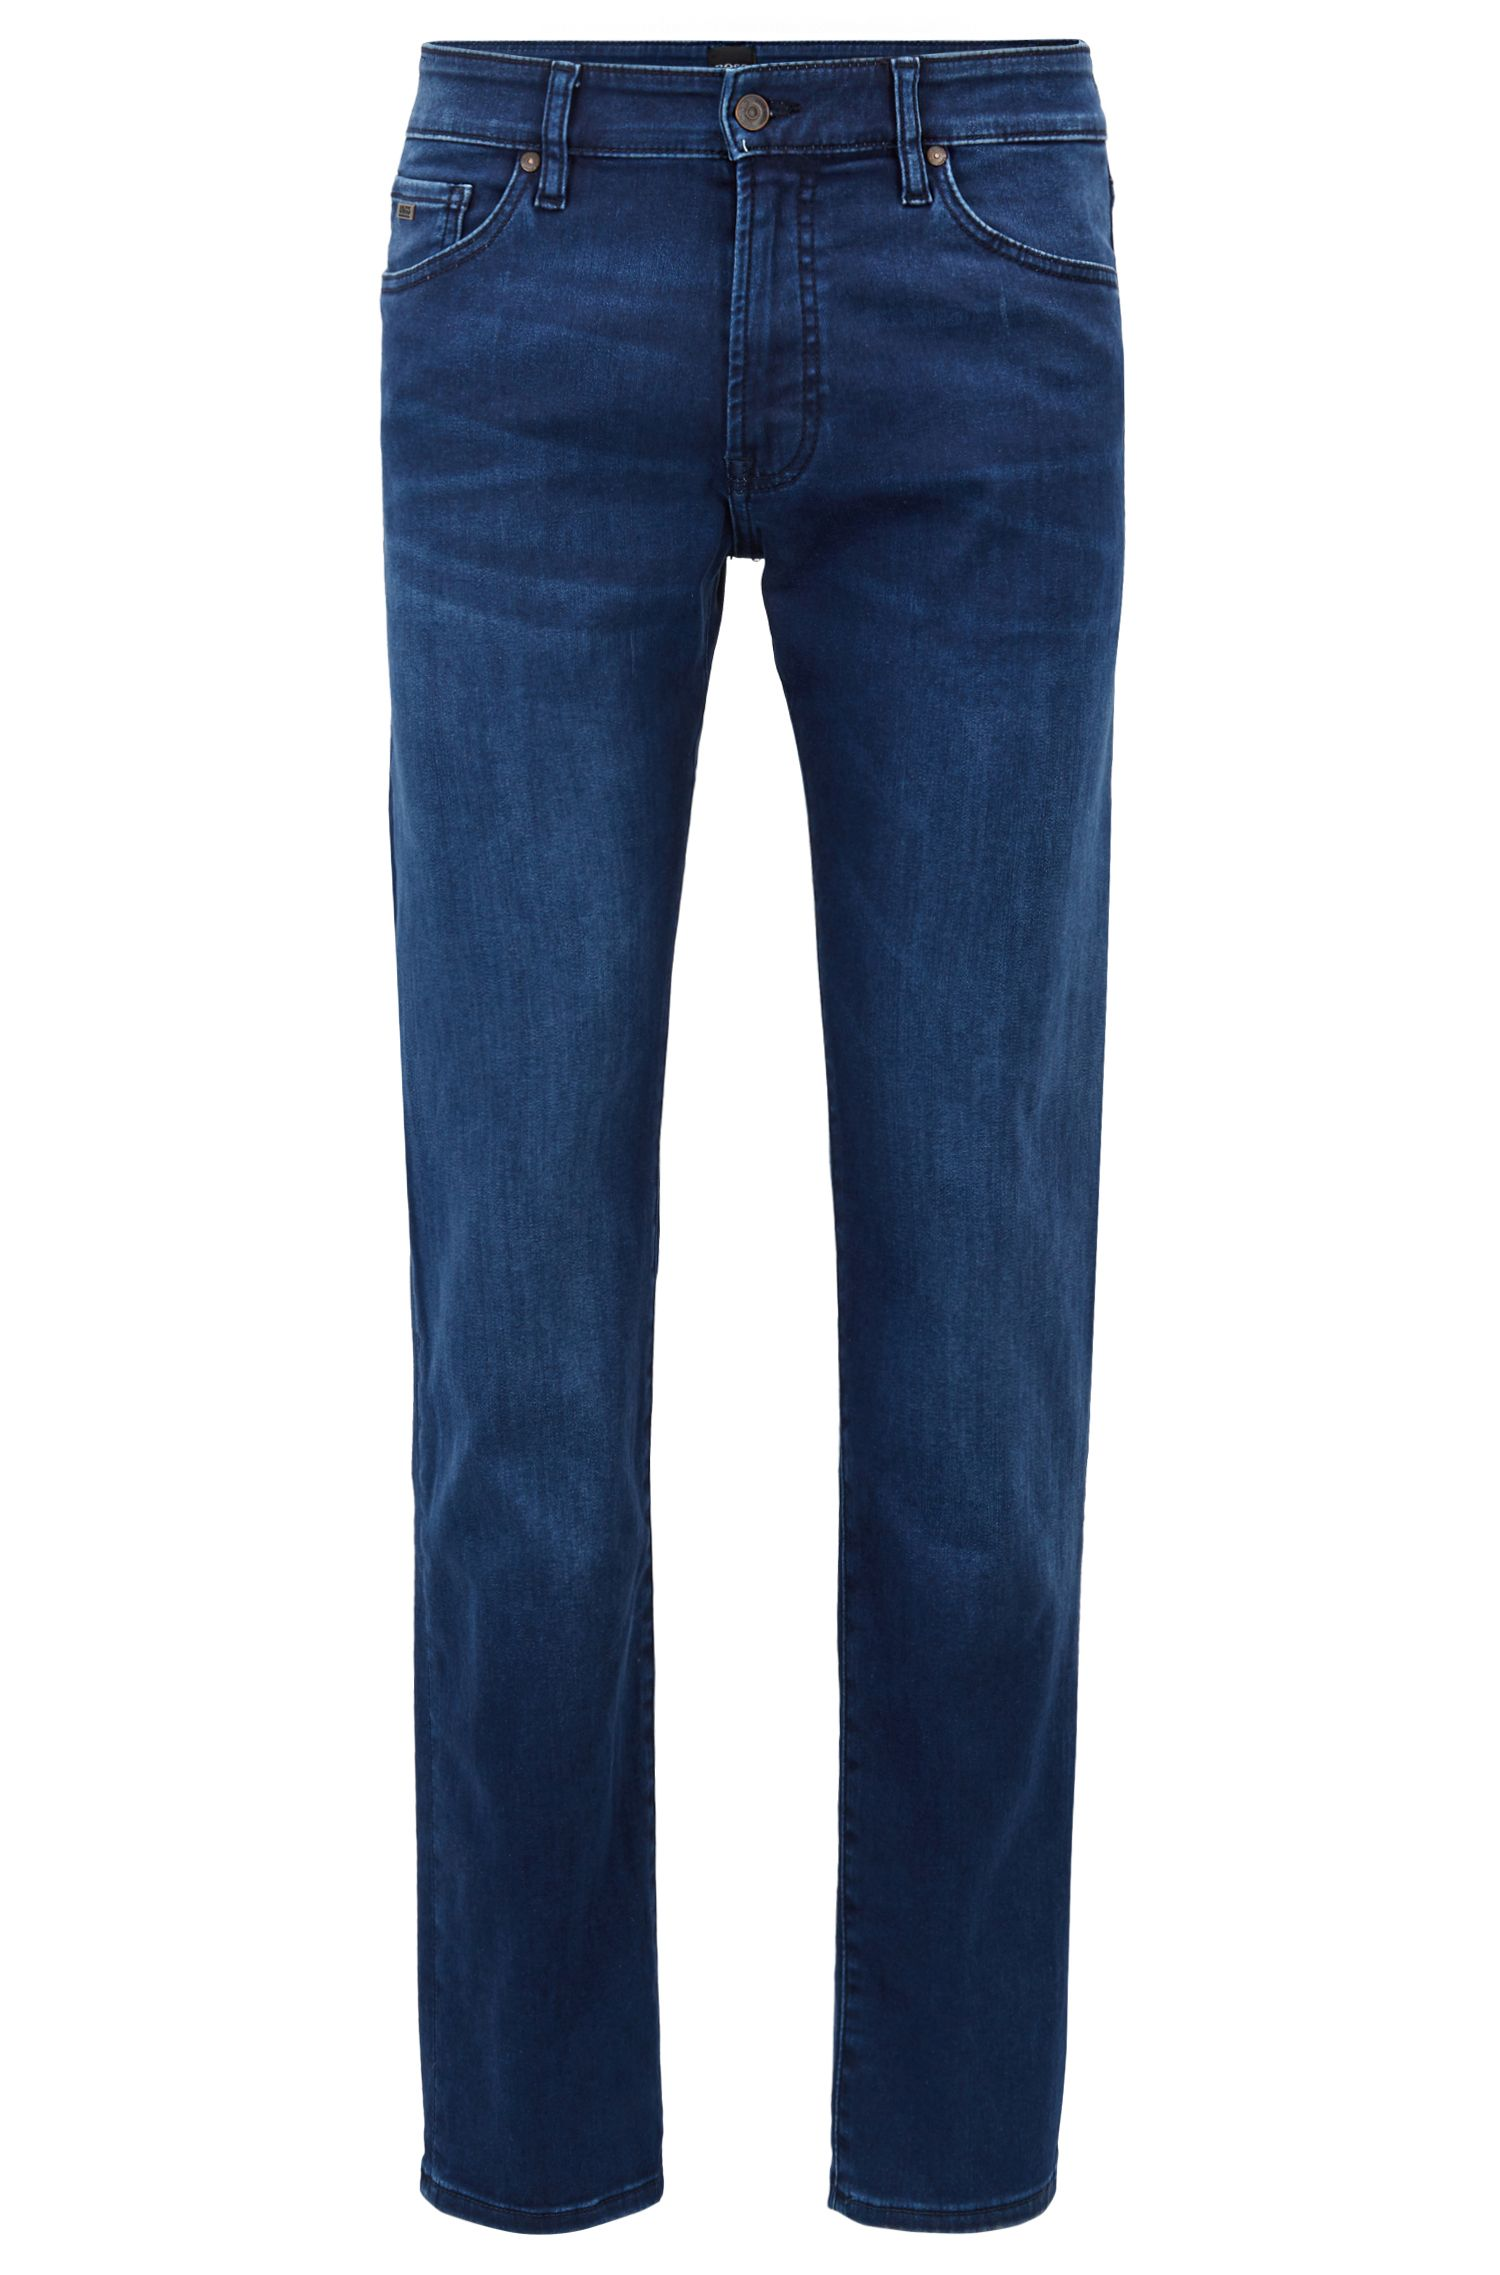 Regular-fit jeans in super-stretch satin denim